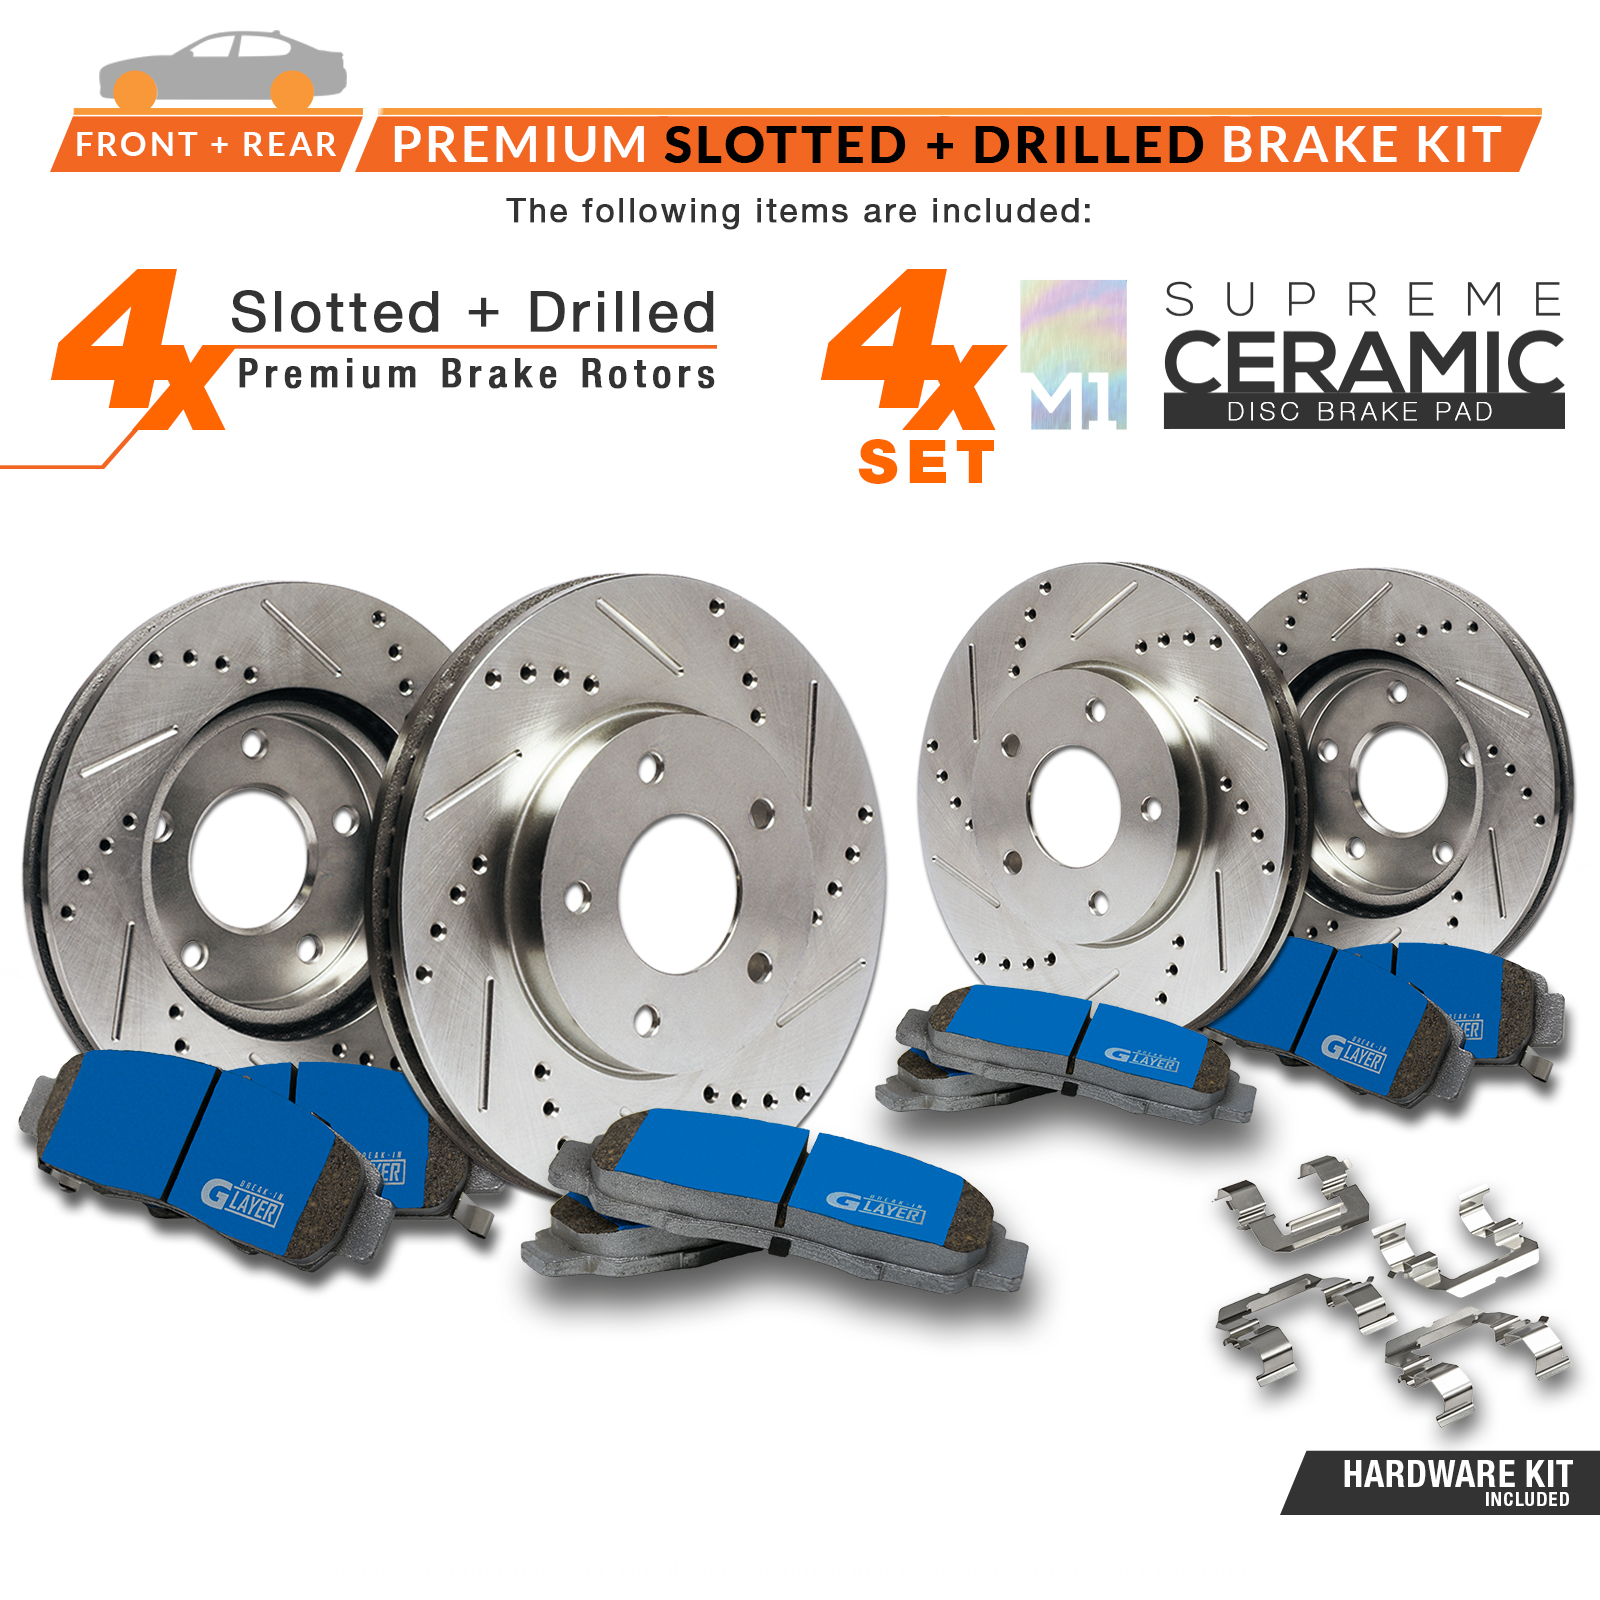 F-R-Rotors-w-M1-Ceramic-Pads-Premium-Brakes-GS300-GS400-IS300 thumbnail 2